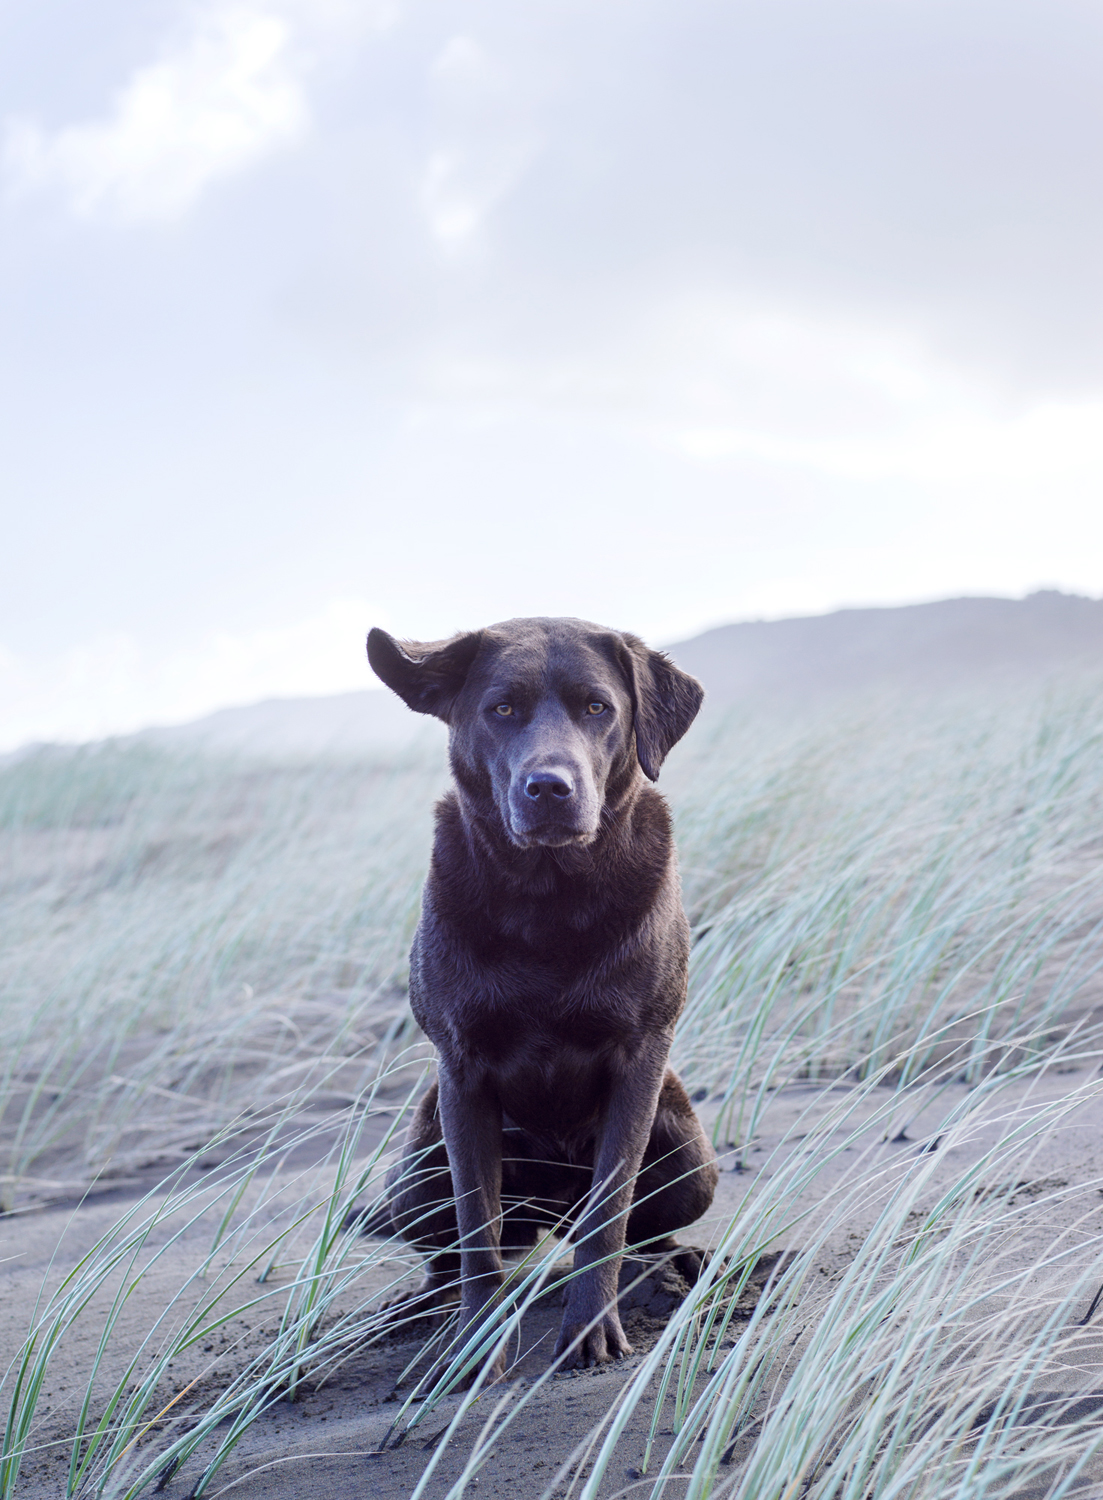 Charcoal Labrador sitting on sand dunes, ear flapping in the wind